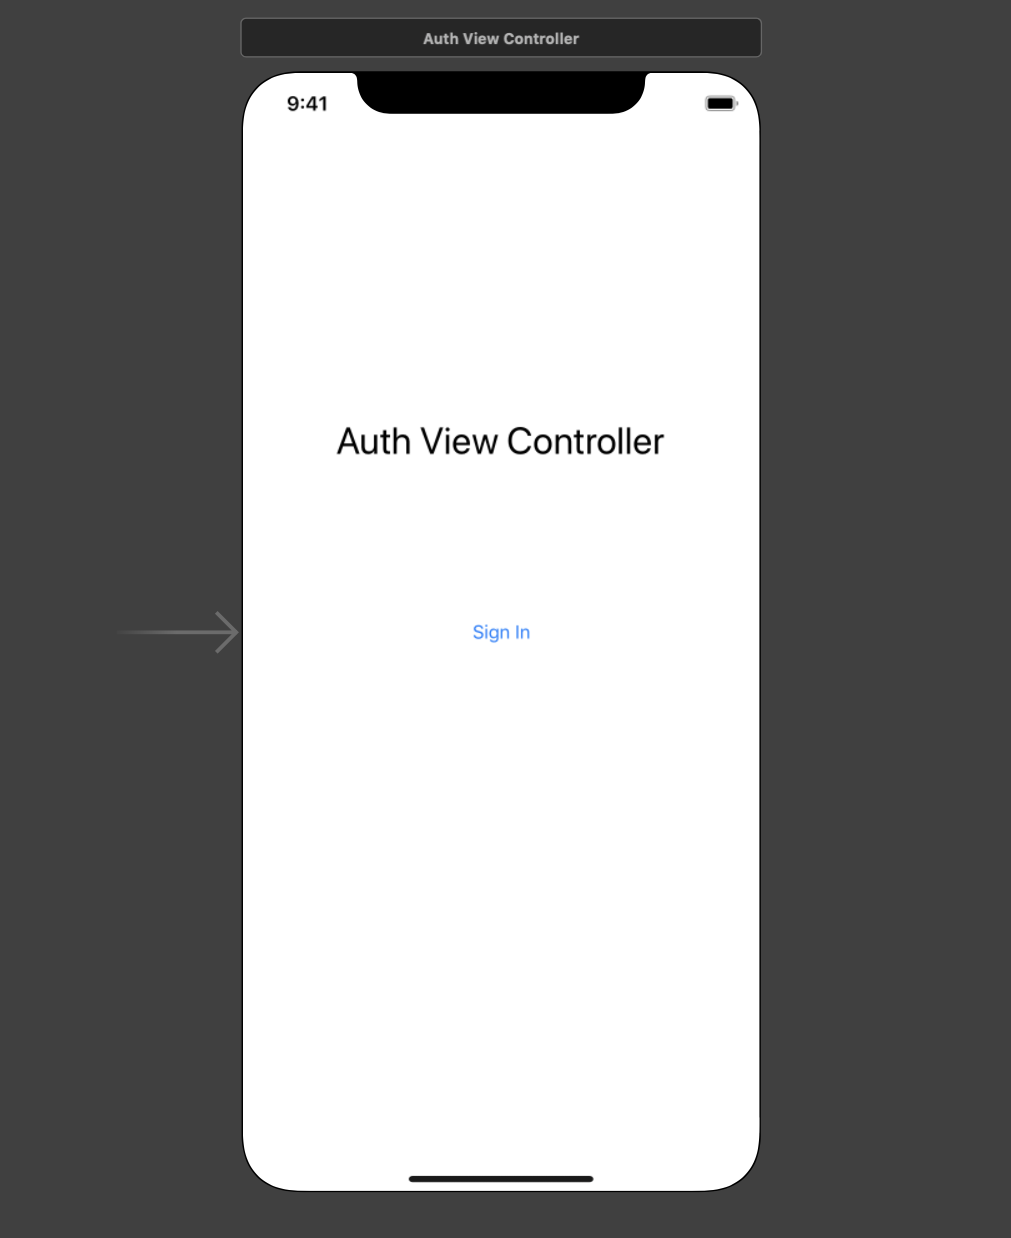 Auth View Controller in Interface Builder